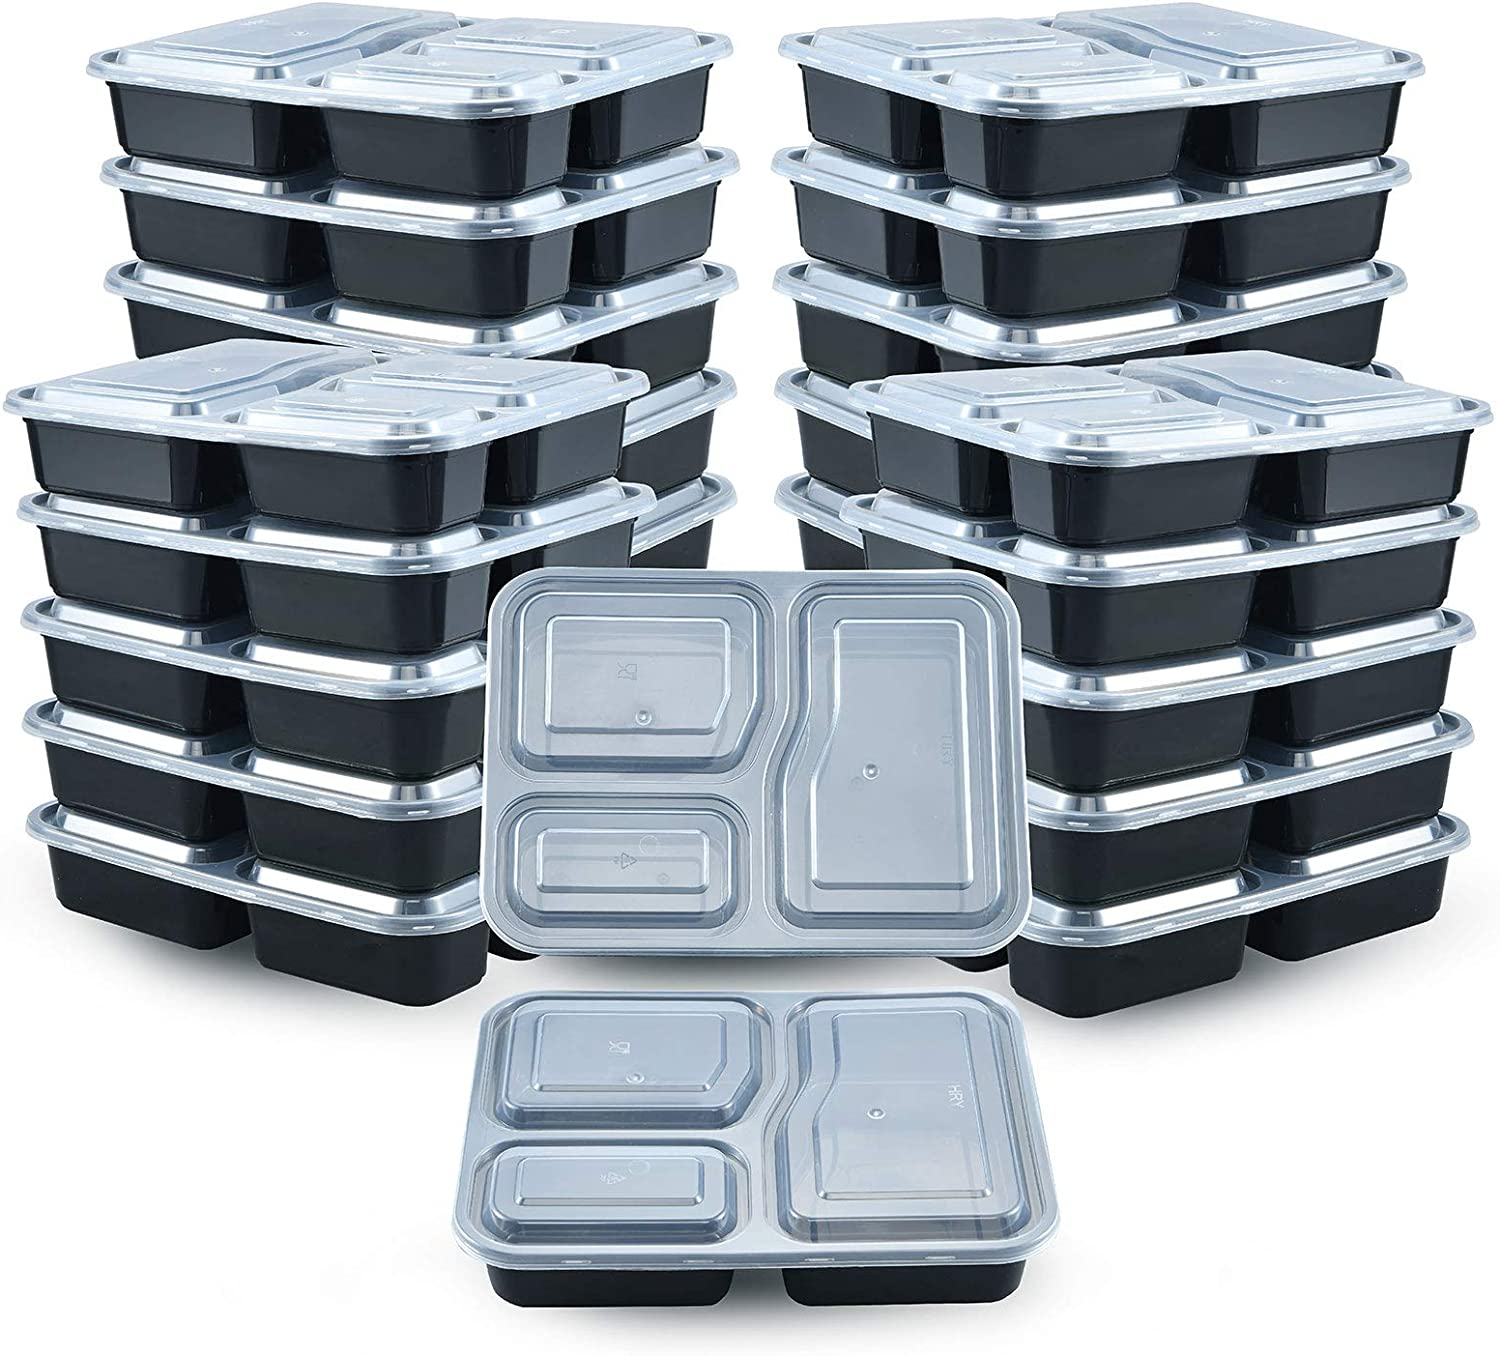 20 Pack Meal Prep Containers, 3 Compartment 32oz, Reusable Food Storage Container, Food Prep Containers, Disposable Food Container with Lids, Bento Lunch Box, Microwavable, Freezer, Deli Takeout